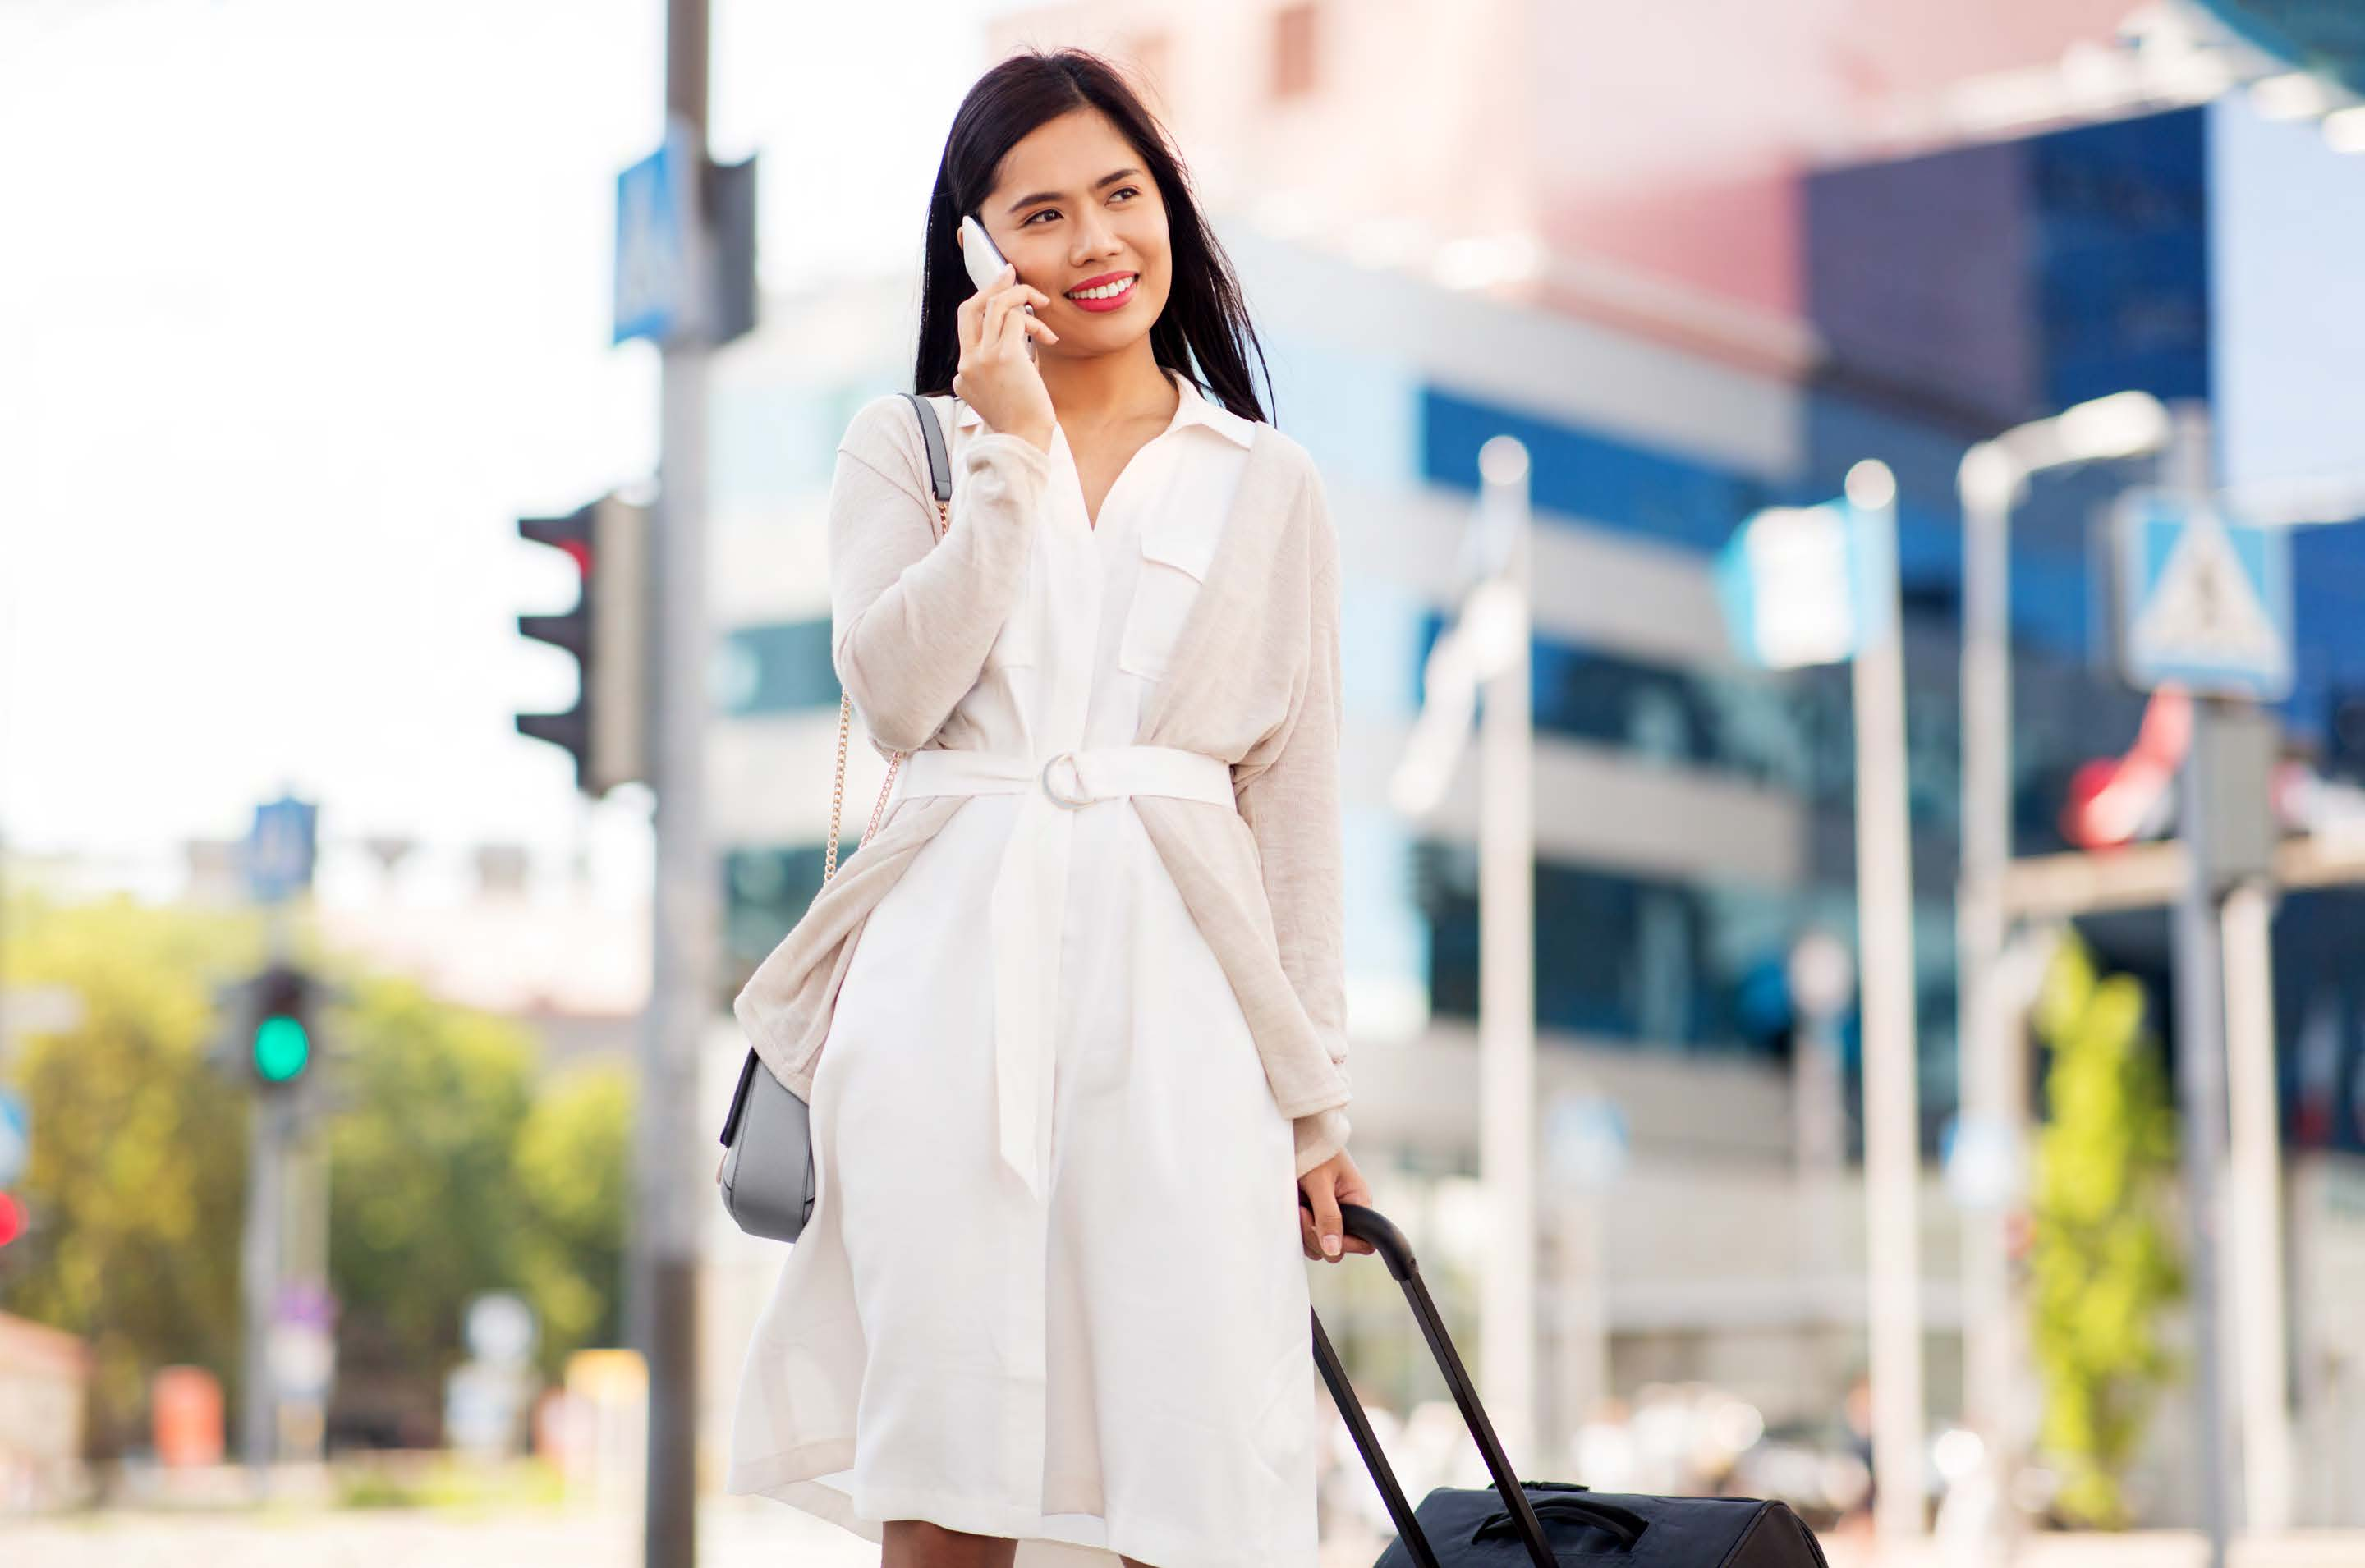 expatriate woman walking with suitcase and talking on cell phone